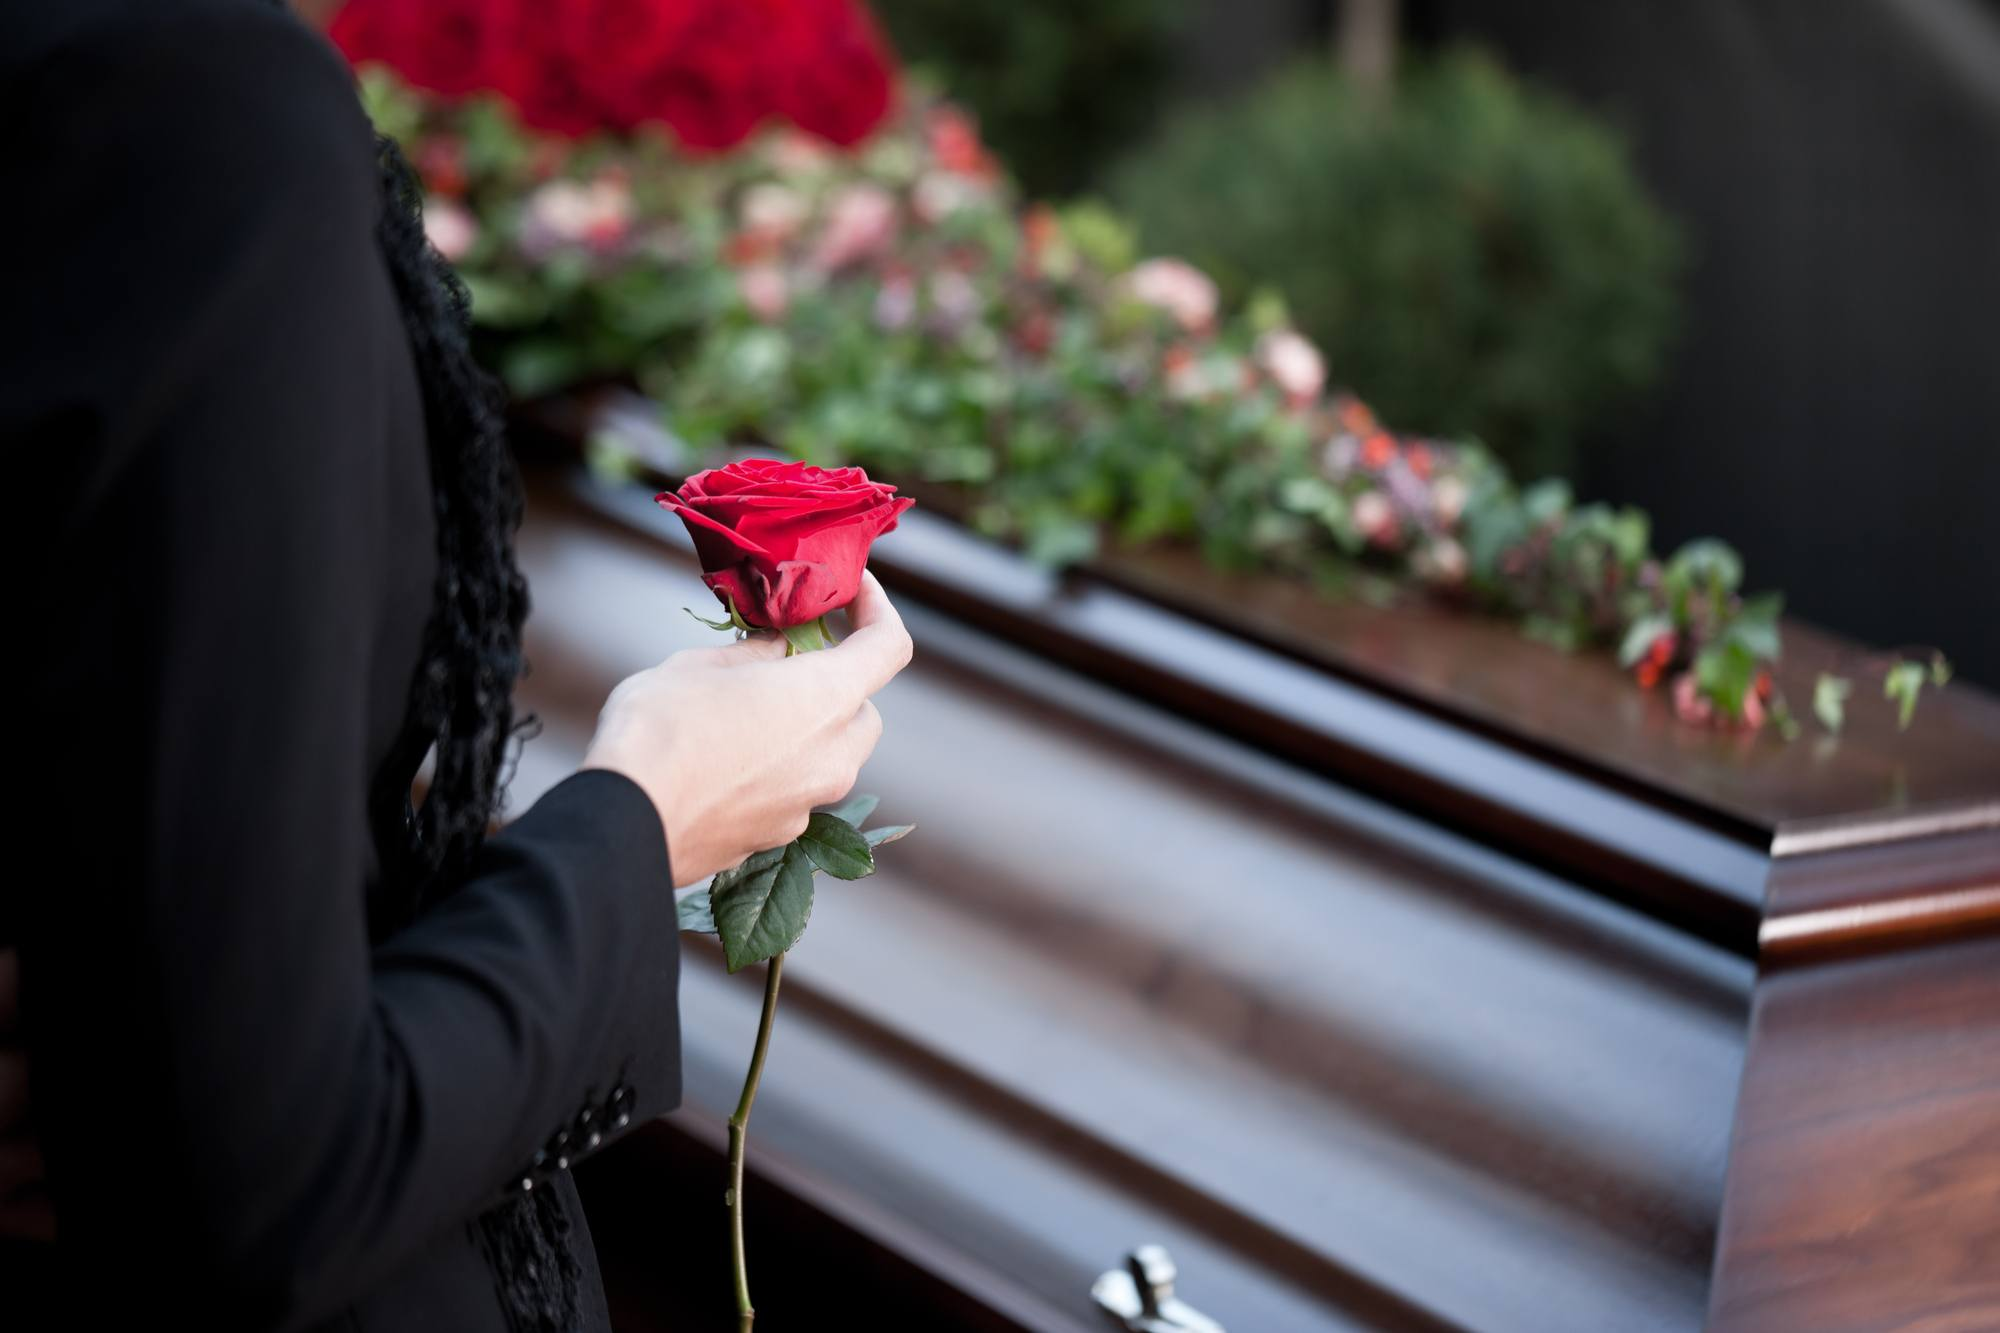 It's so hard to know what to say when someone dies